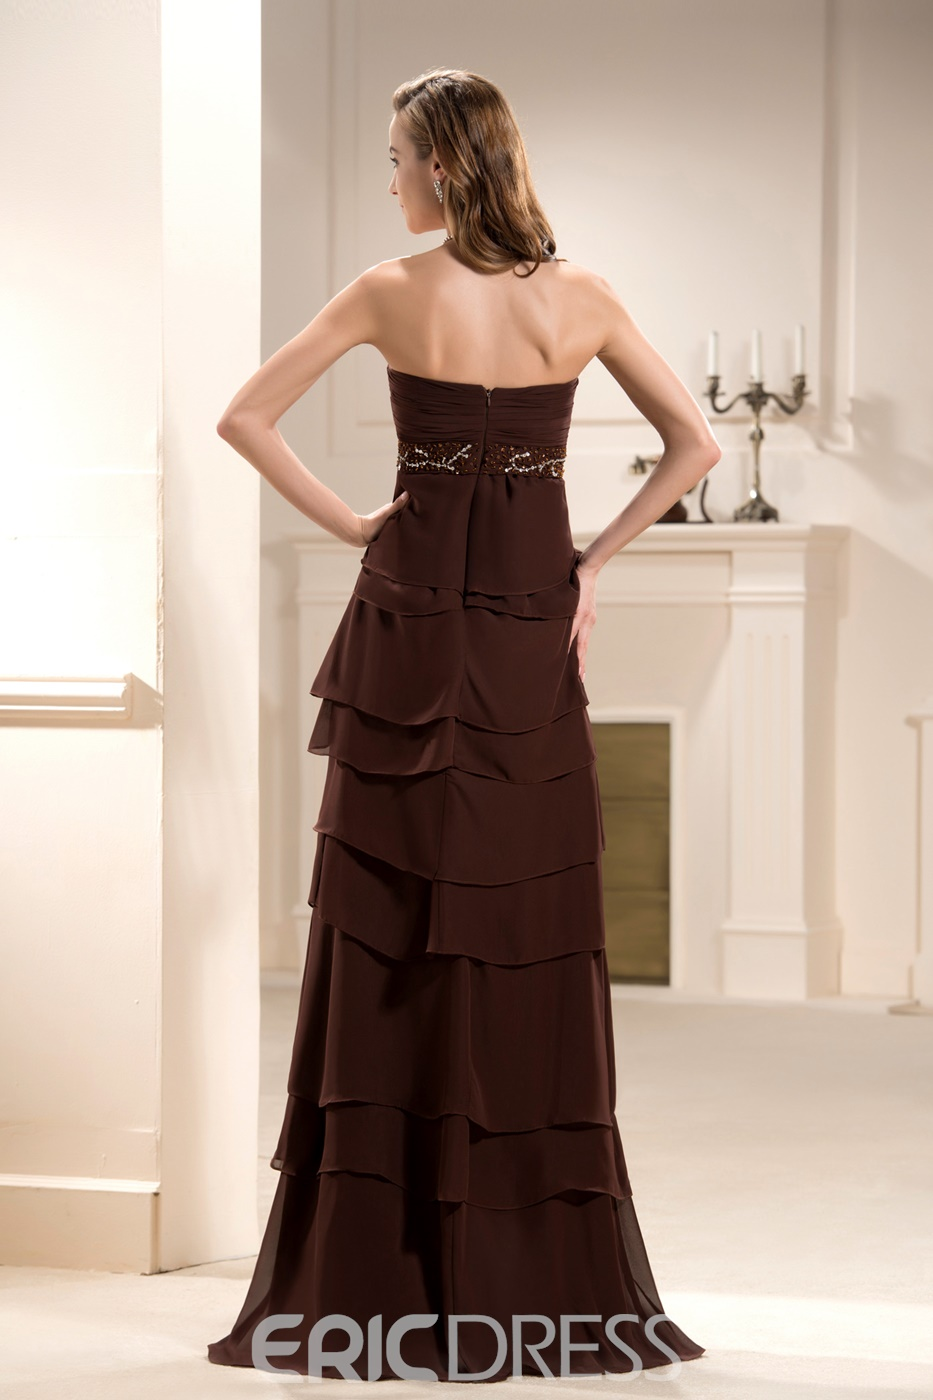 Graceful Beaded Pleats Tiered A-Line Strapless Floor-Length Mother of the Bride Dress